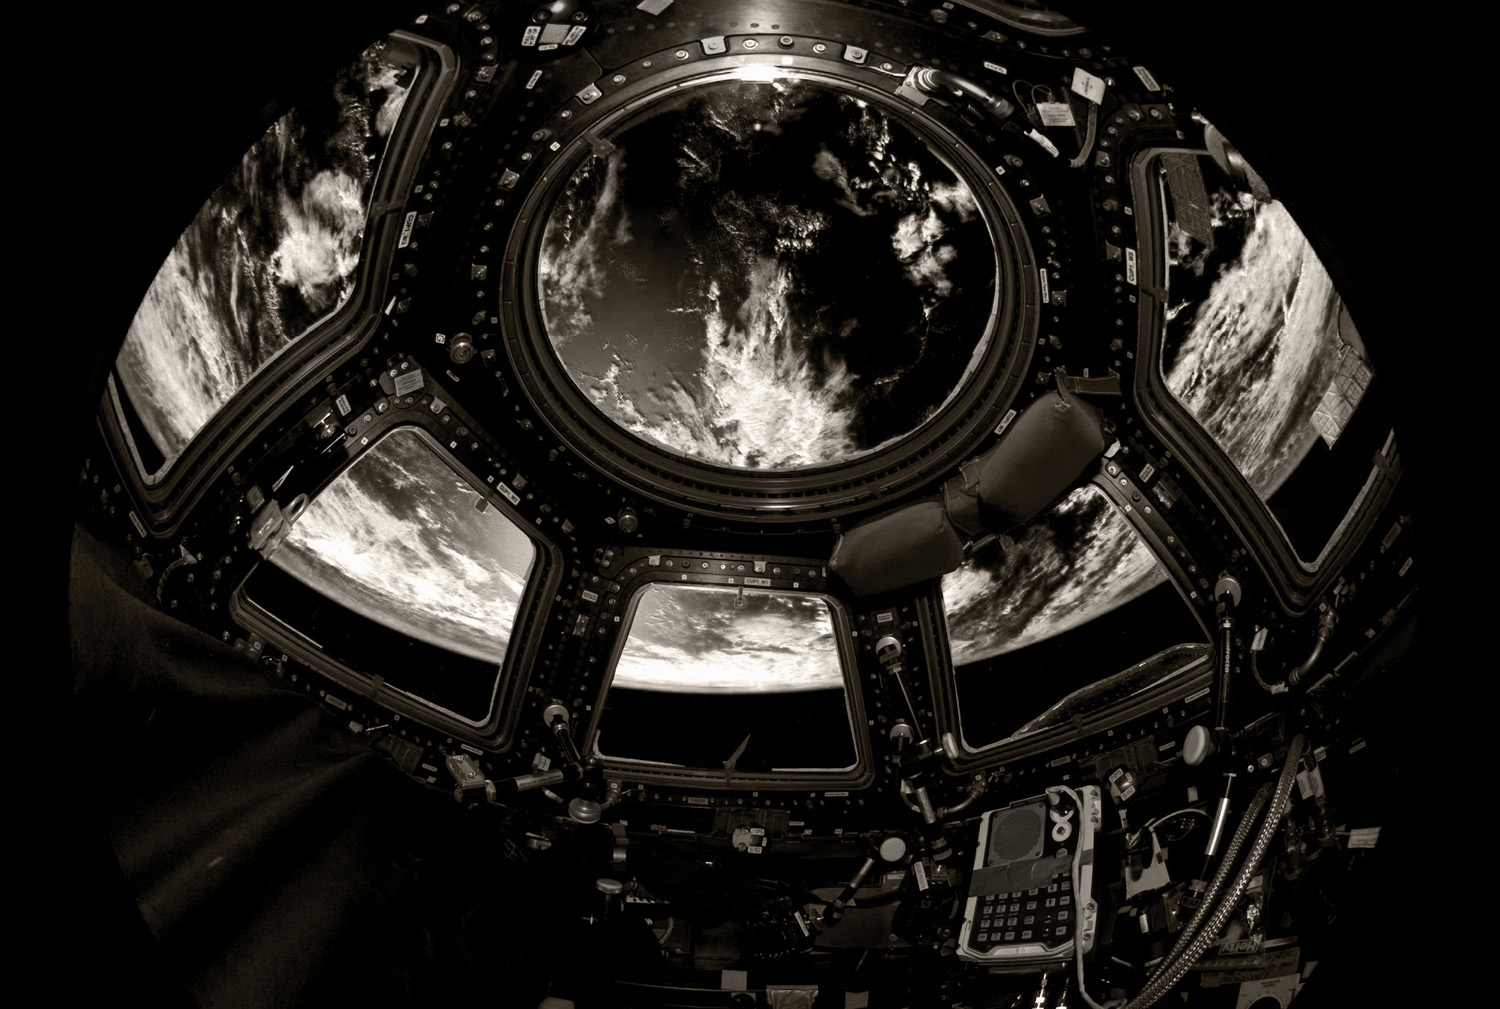 International Space Station Cupola windows with Earth view, rendered in B&W.                                 (Taken with an 8mm fisheye lens.)